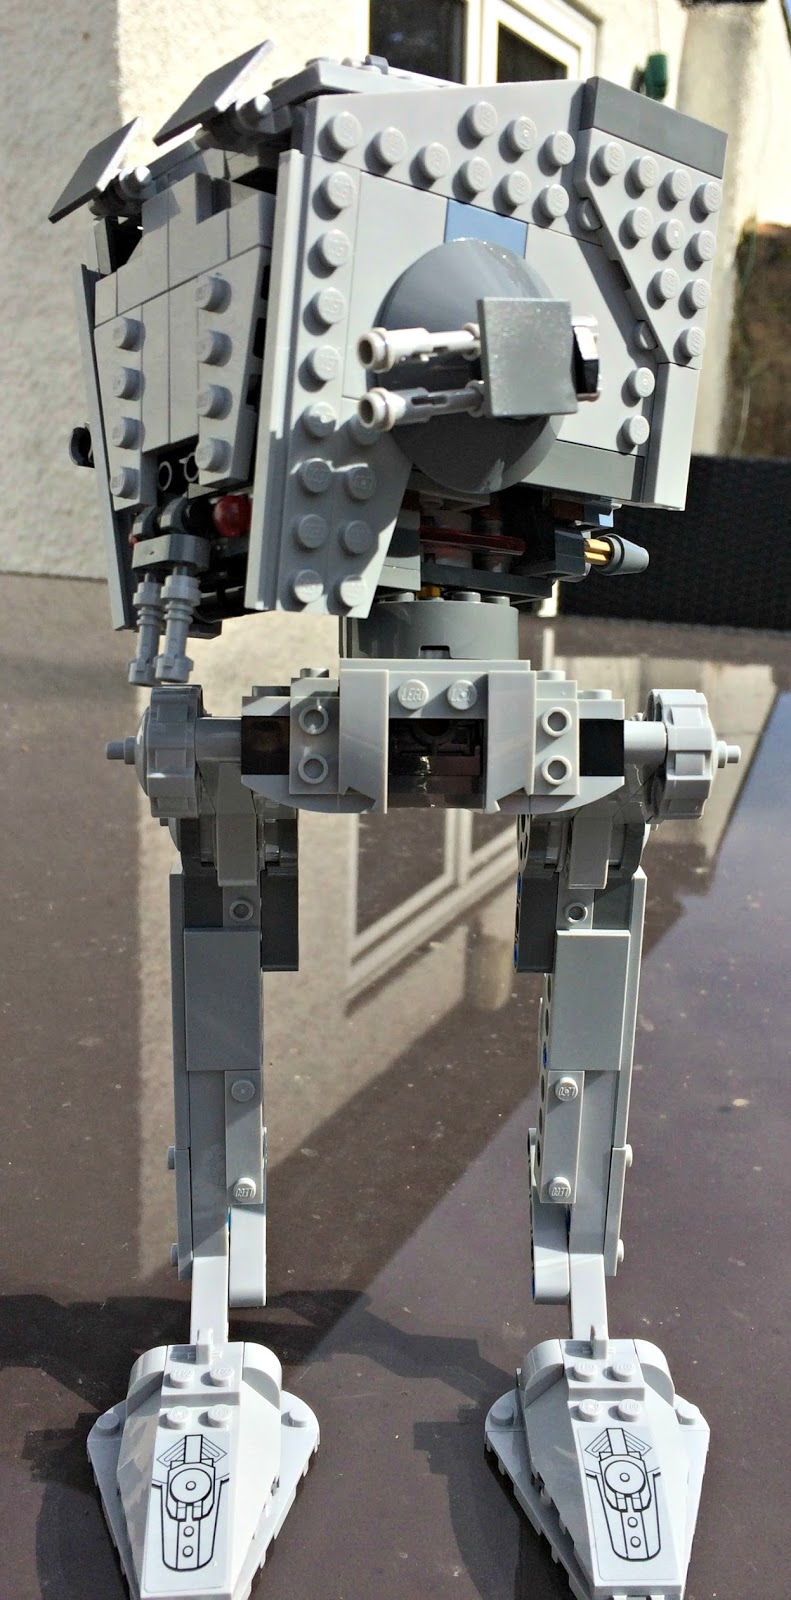 The Lego 75153 Star Wars AT-ST Walker Set